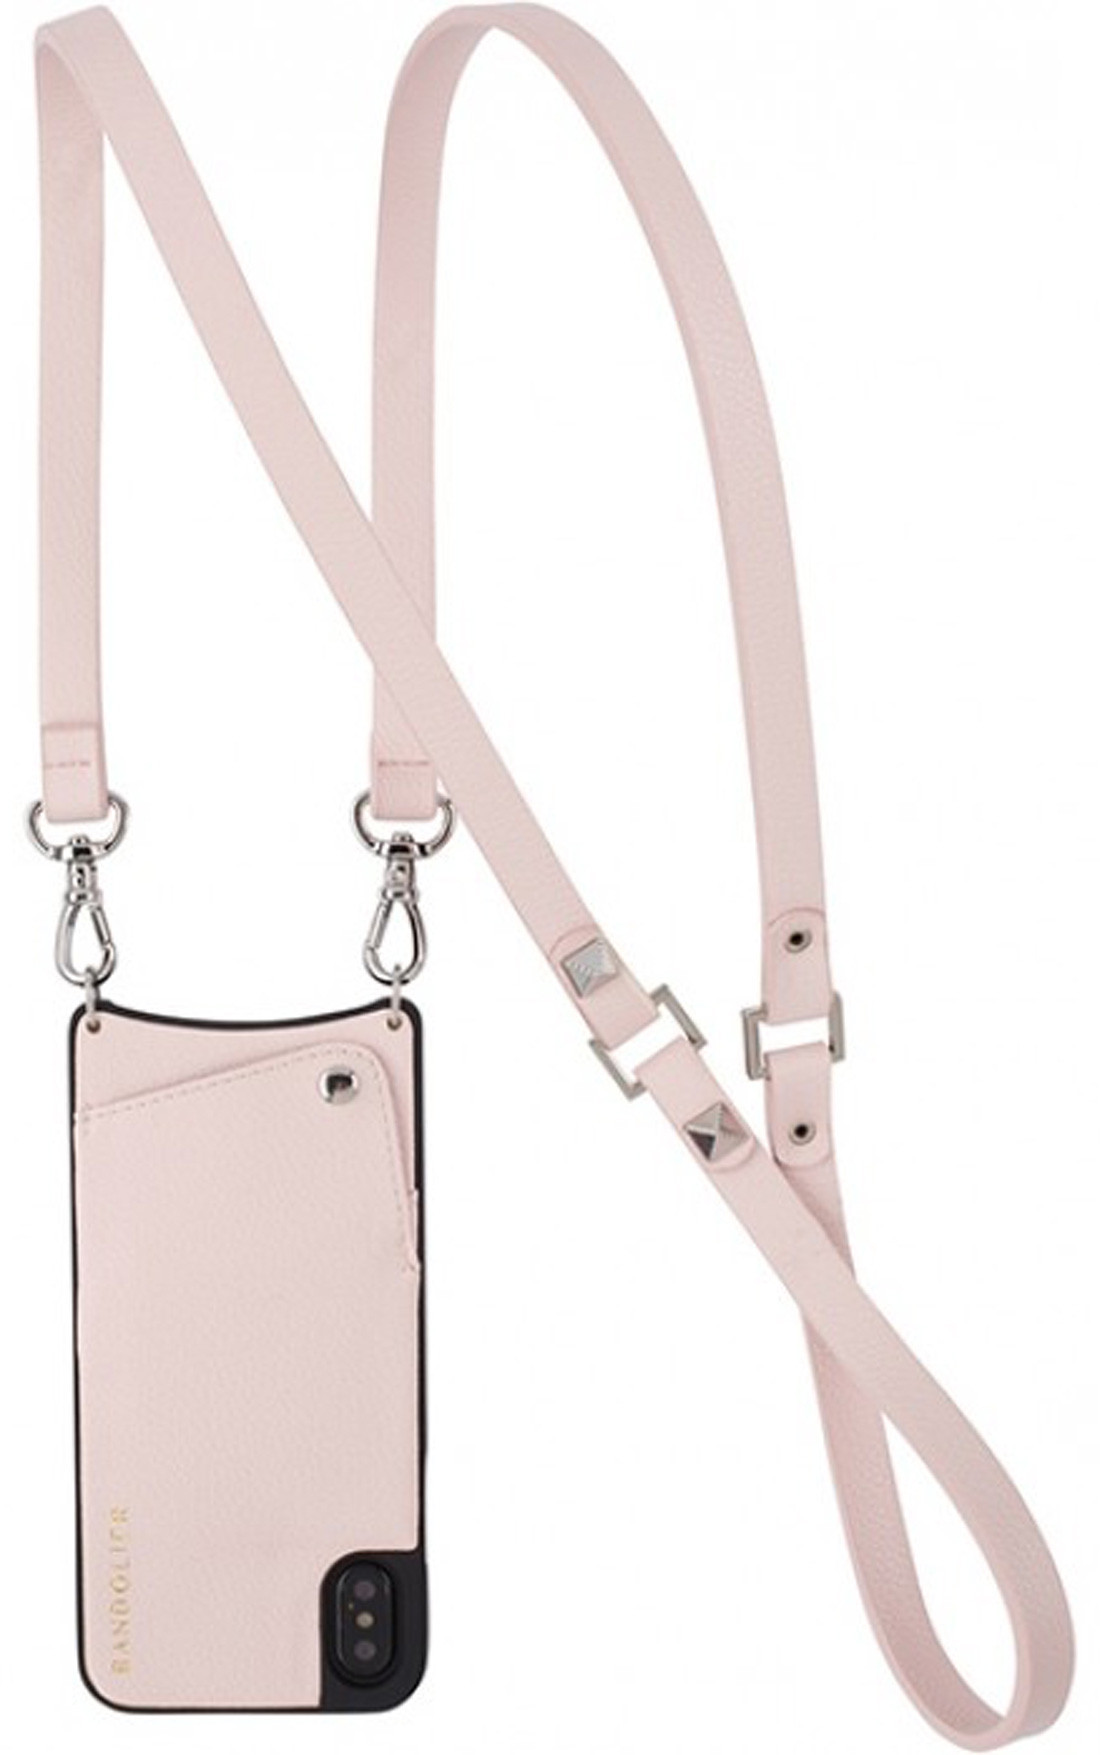 Bandolier - Carly Light Pink iPhone Case (3151)